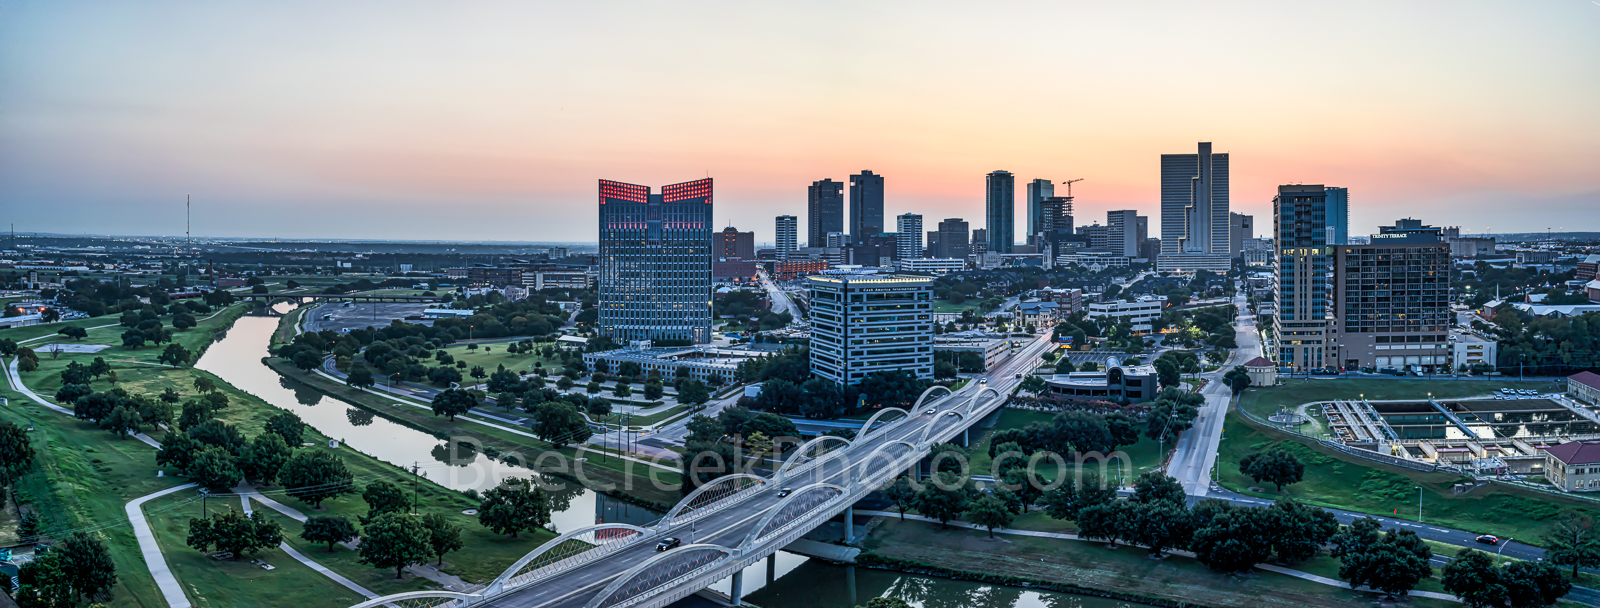 Fort Worth, Skyline, skylines, cityscape, cityscapes, Ft. Worth, downtown, sunrise, pink, seventh street bridge, 7th street bridge, Trinity river, Texas, city, panorama, pano,, photo